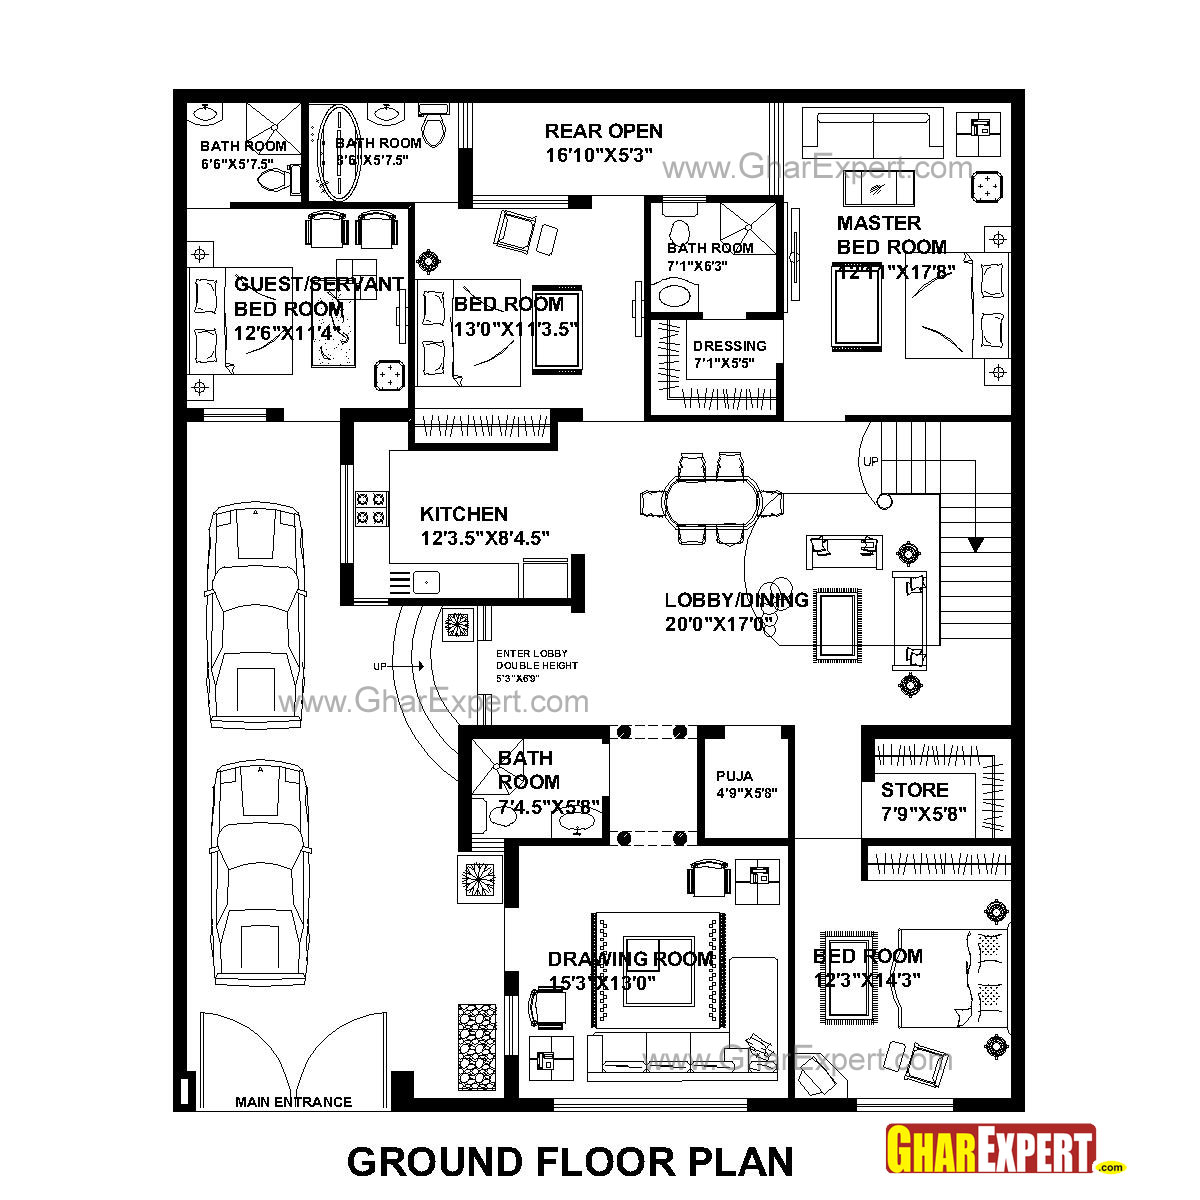 House plan for 48 feet by 58 feet plot plot size 309 300 ft to m